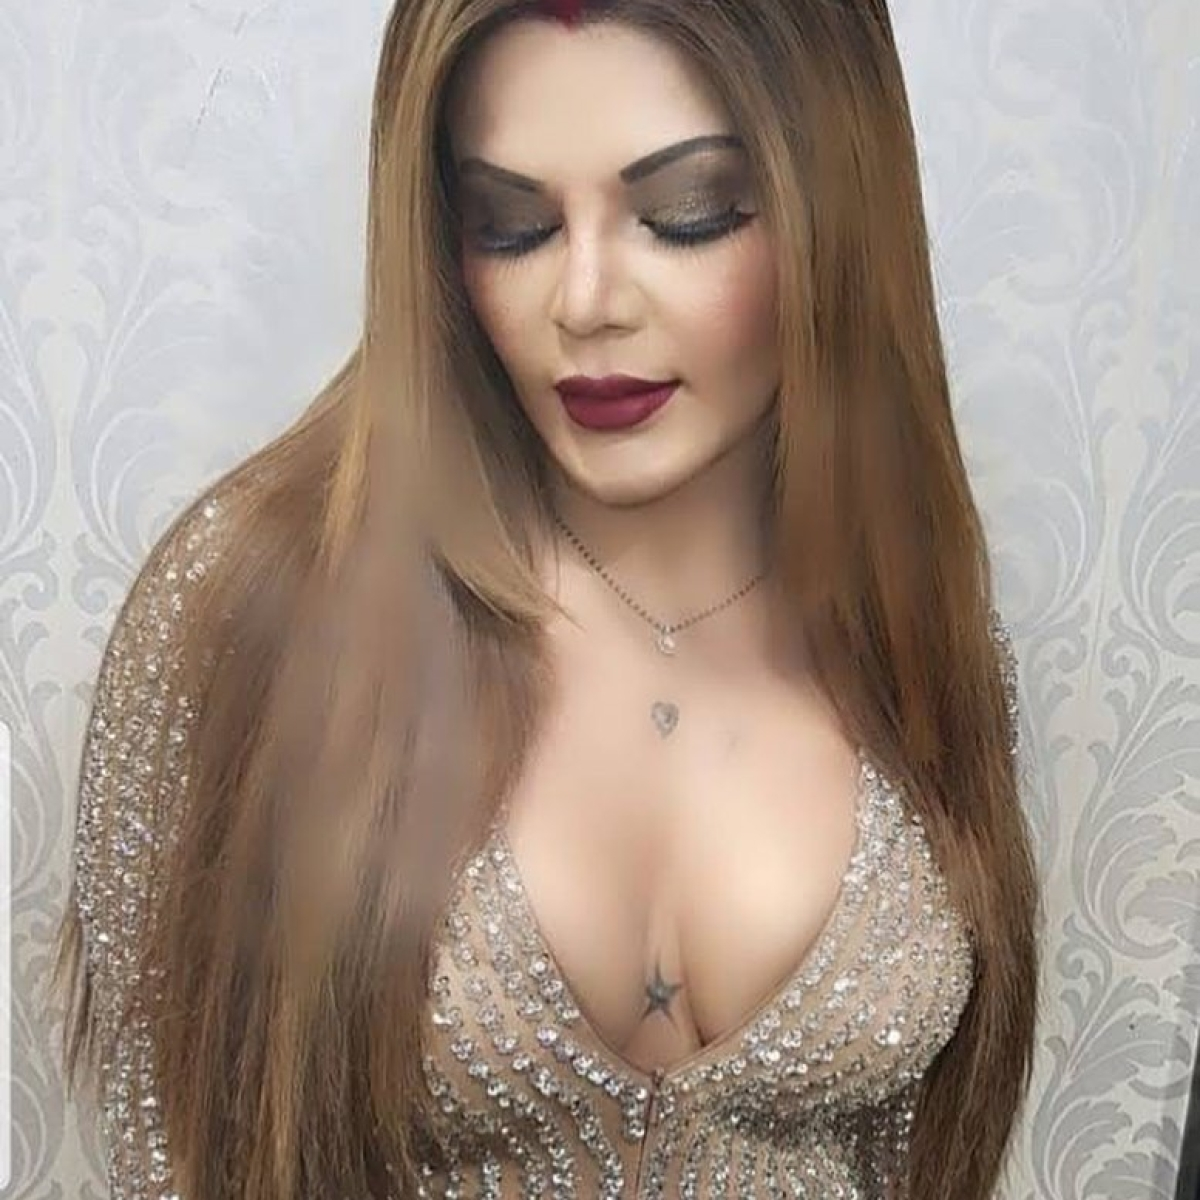 'It's not a joke okay': Rakhi Sawant's 'virginity certificate' from 2018 resurfaces on social media